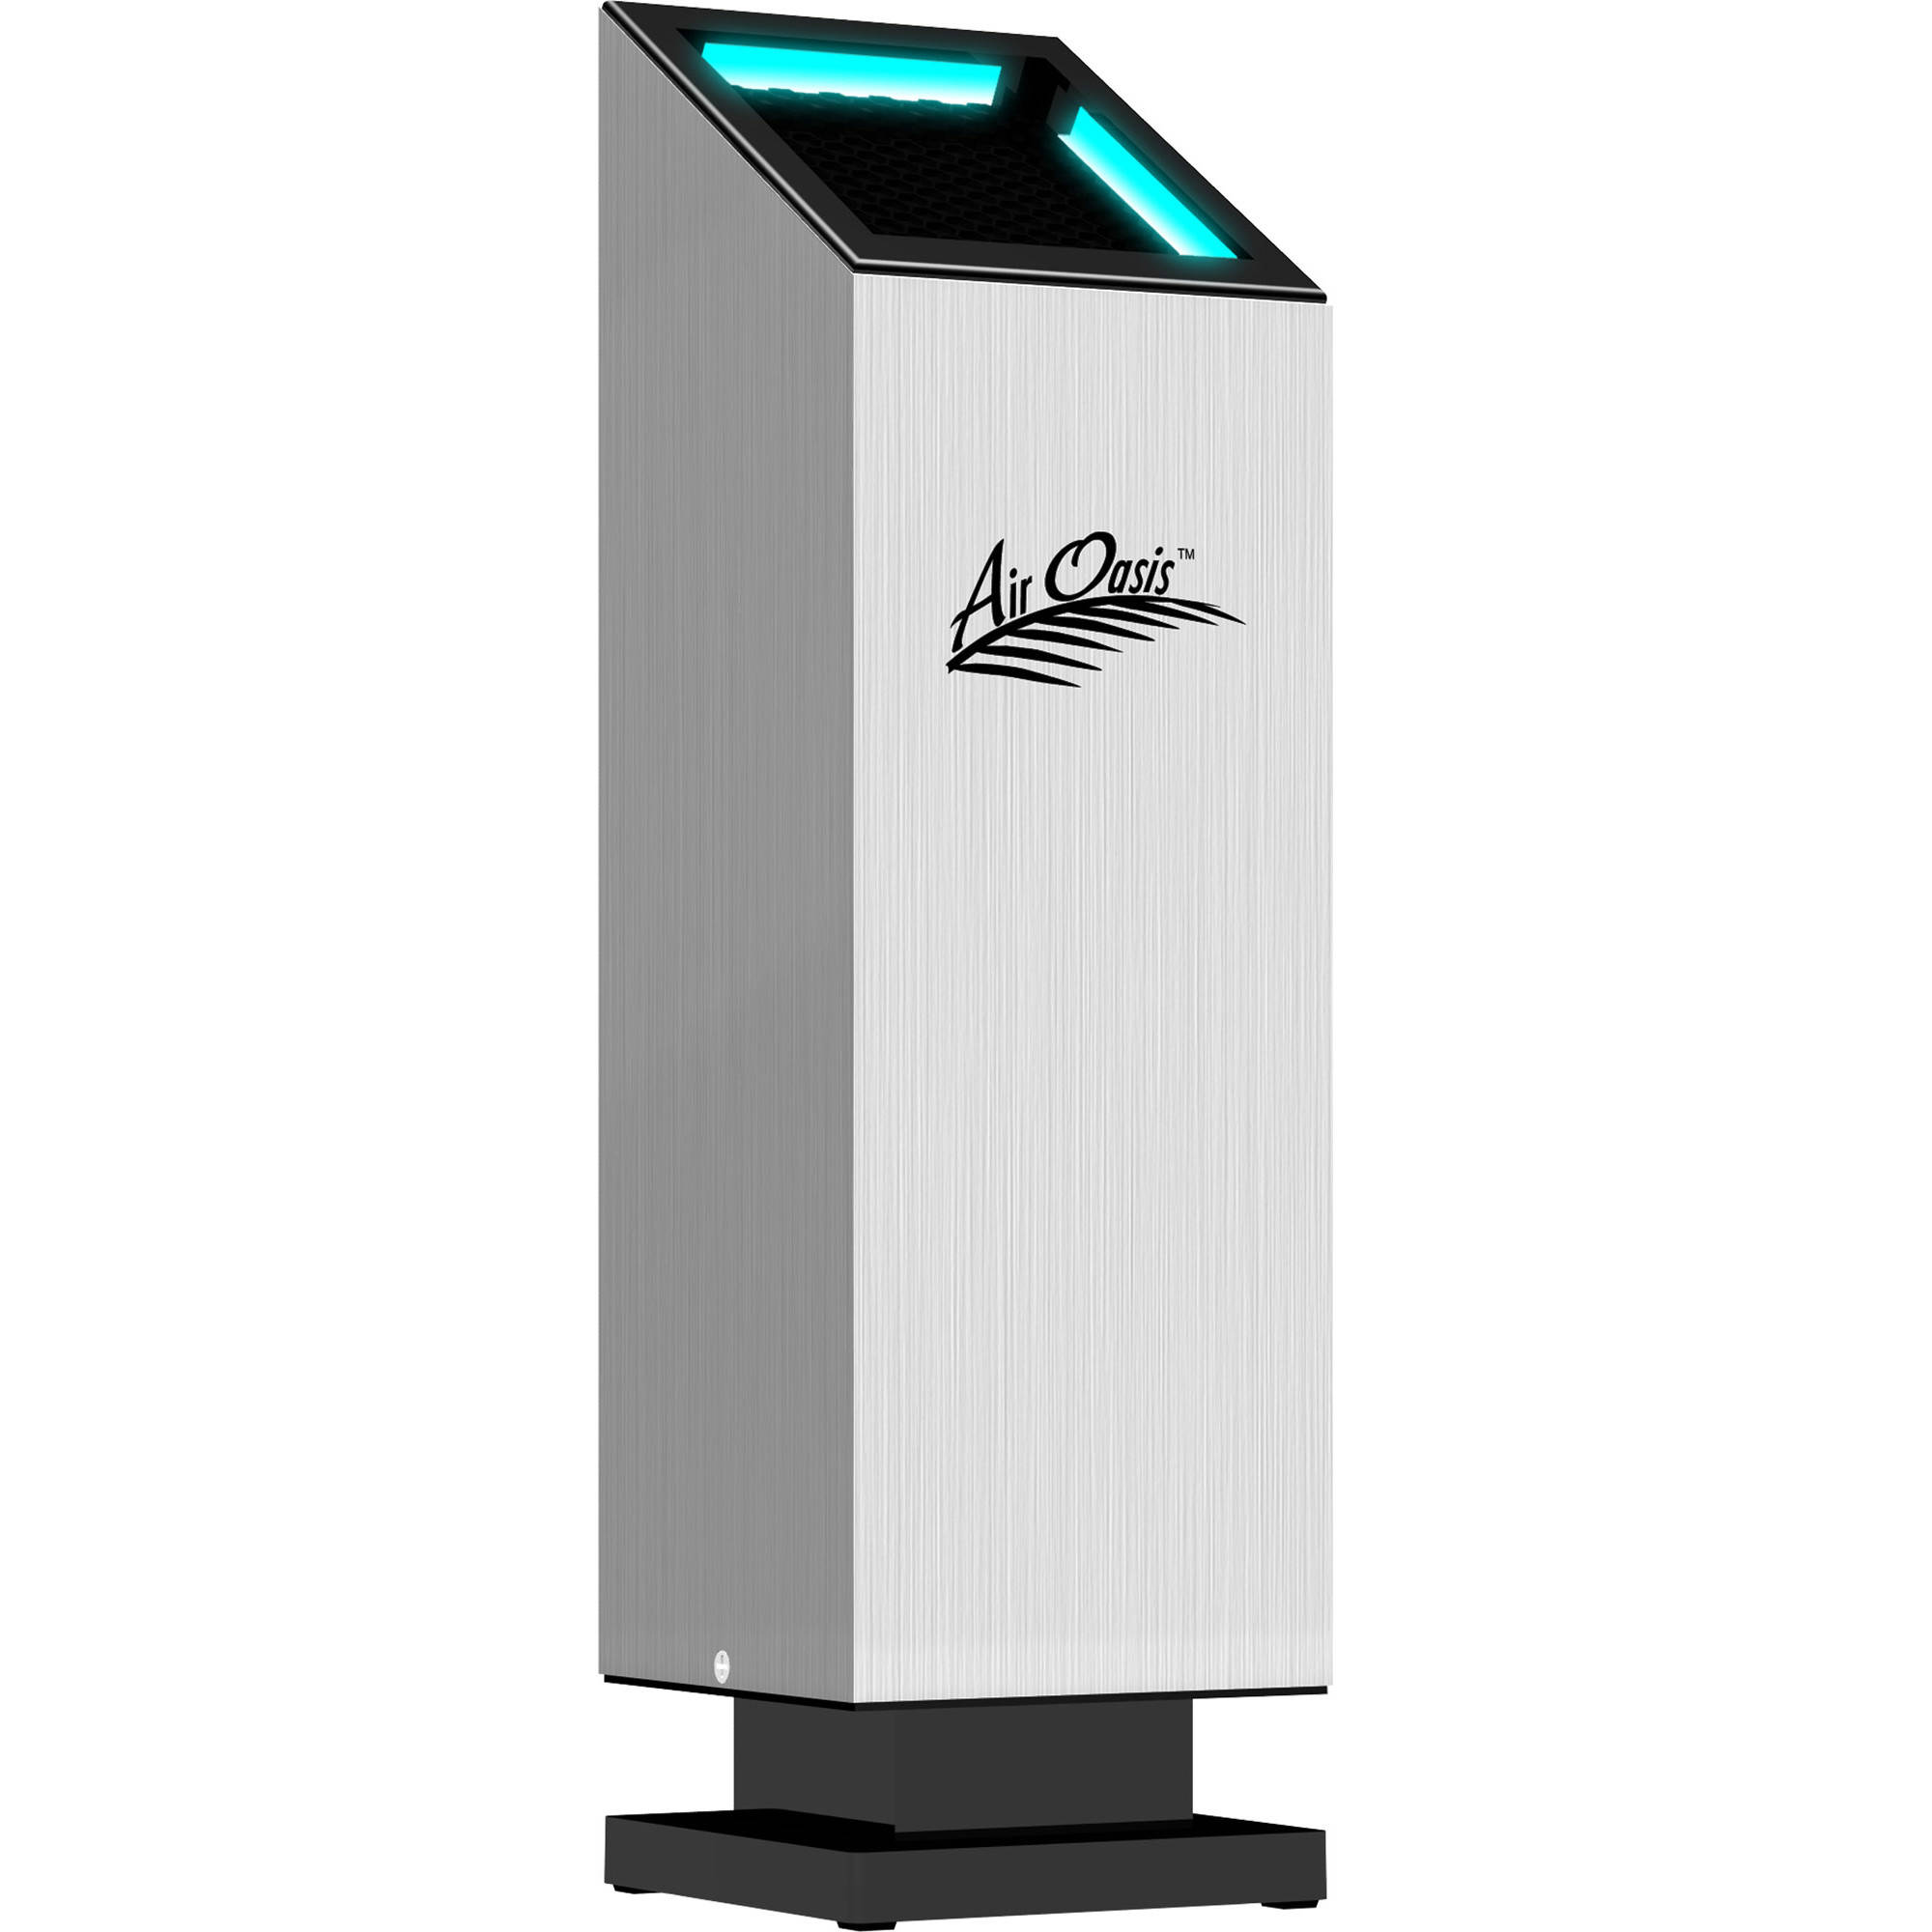 Image of Air Oasis 1000 G3